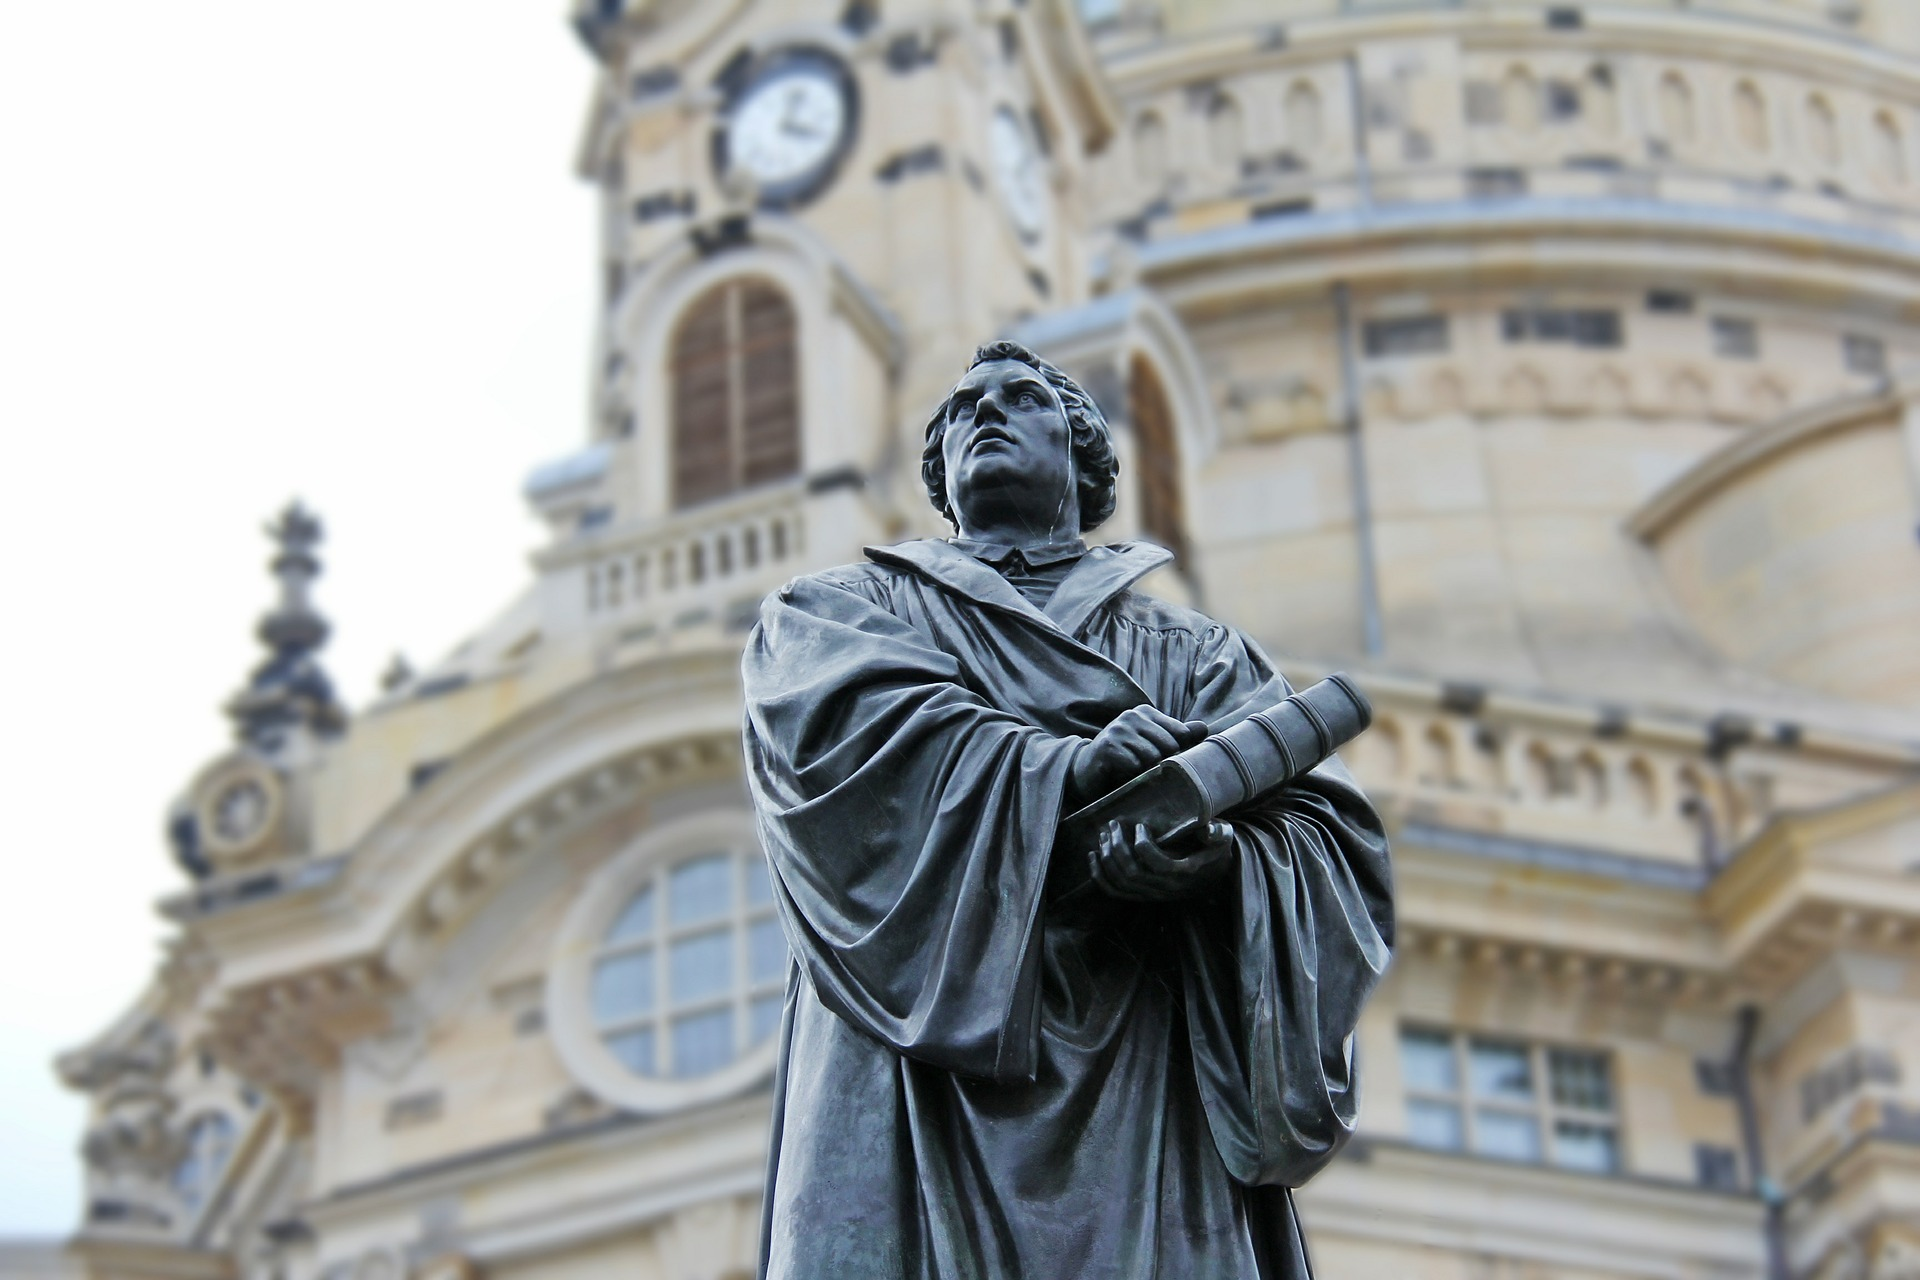 Who Cares about the Reformation? Martin Luther, learning from church history